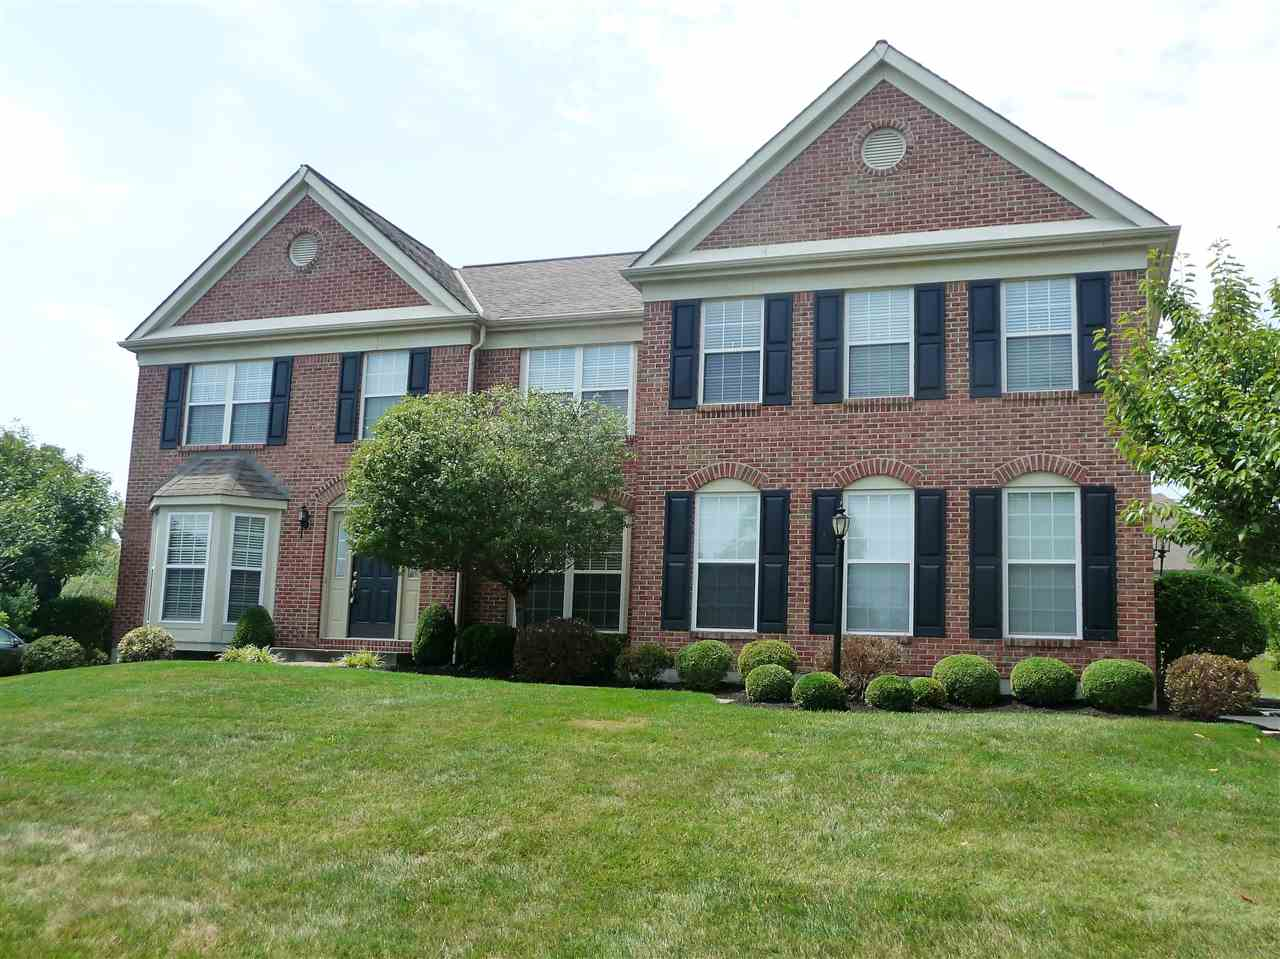 Photo 1 for 1775 Fair Meadow Dr Florence, KY 41042